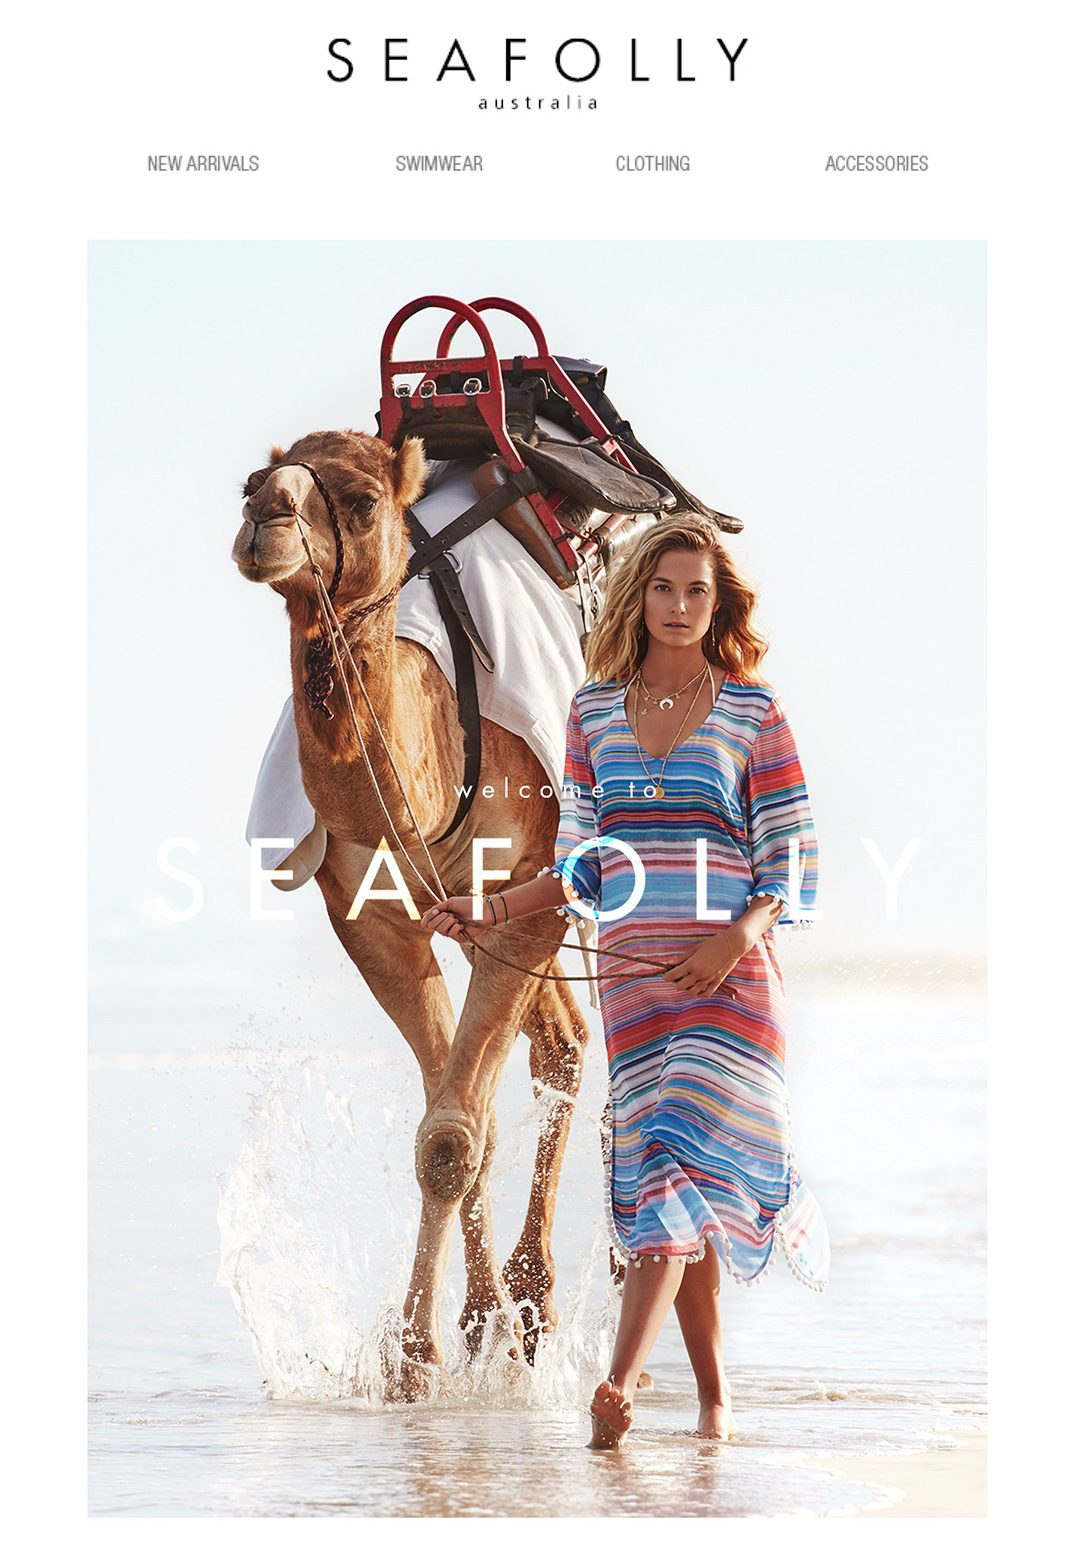 Seafolly email